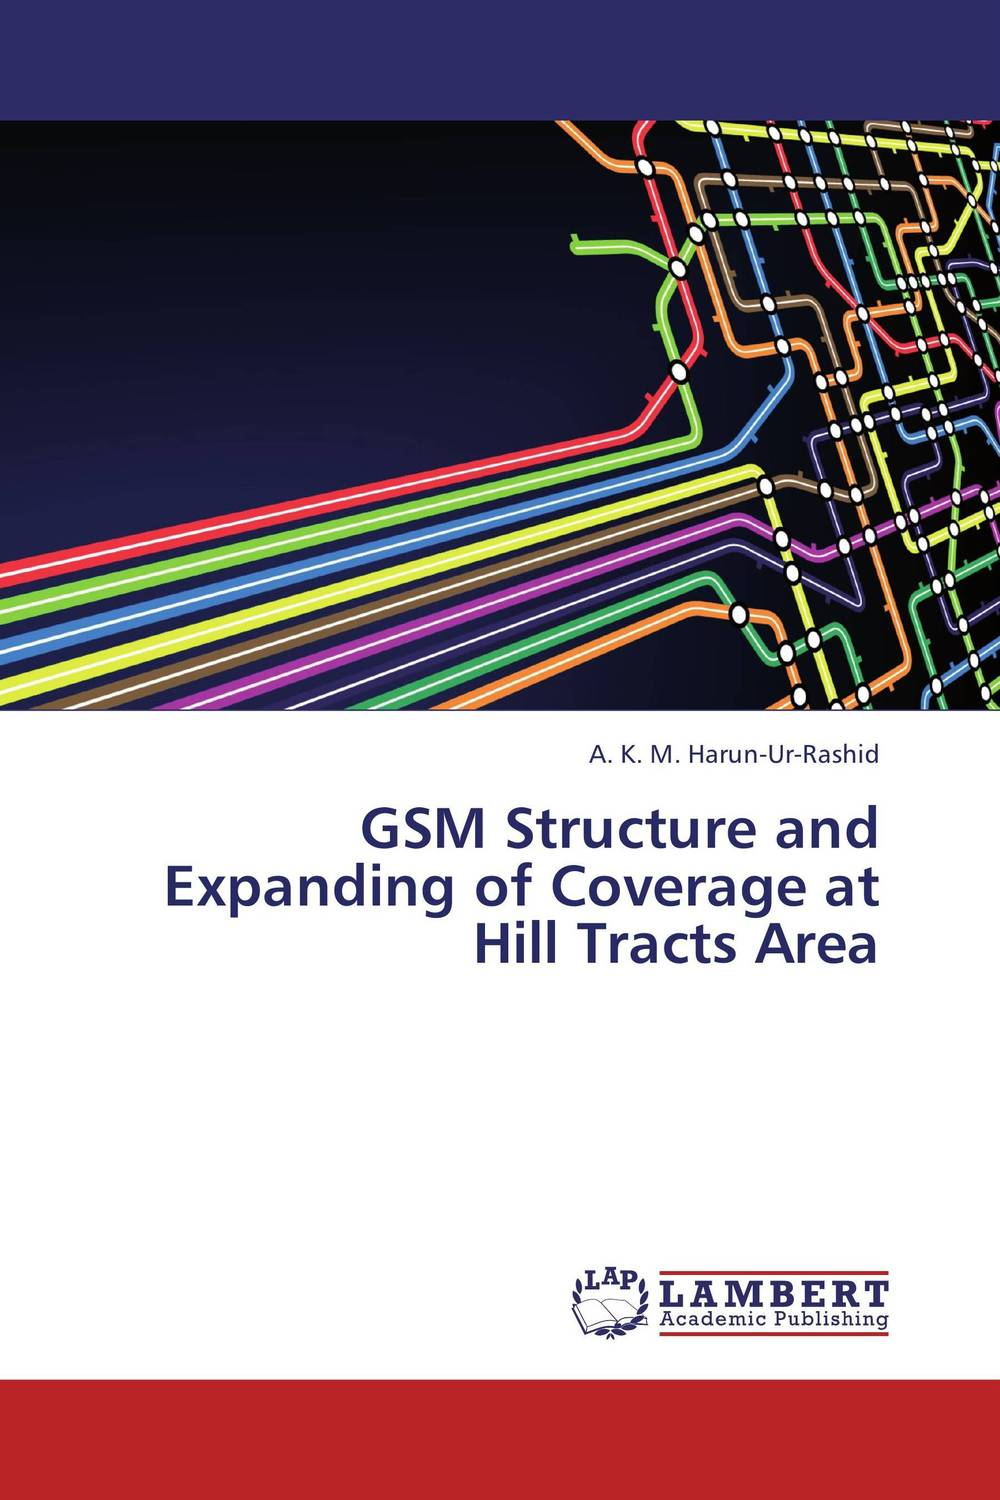 GSM Structure and Expanding of Coverage at Hill Tracts Area showdown at gun hill